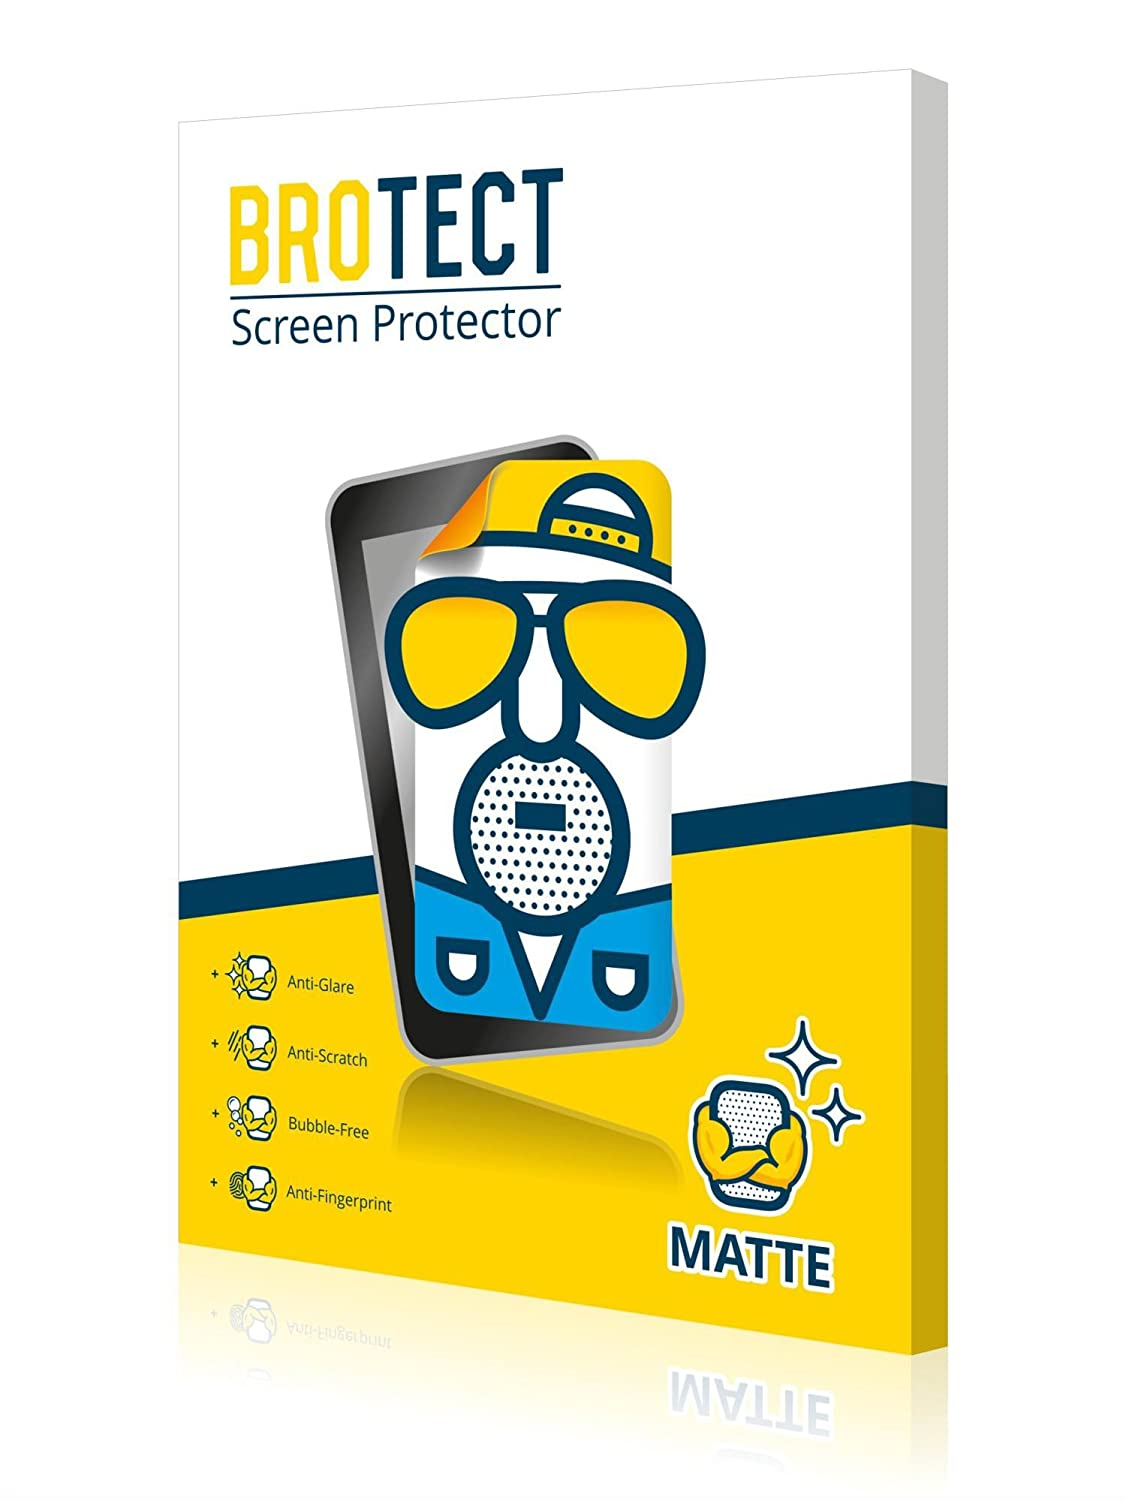 2x BROTECT Matte Screen Protector for HP 50g F2229AA#UUZ, Matte, Anti-Glare, Anti-Scratch